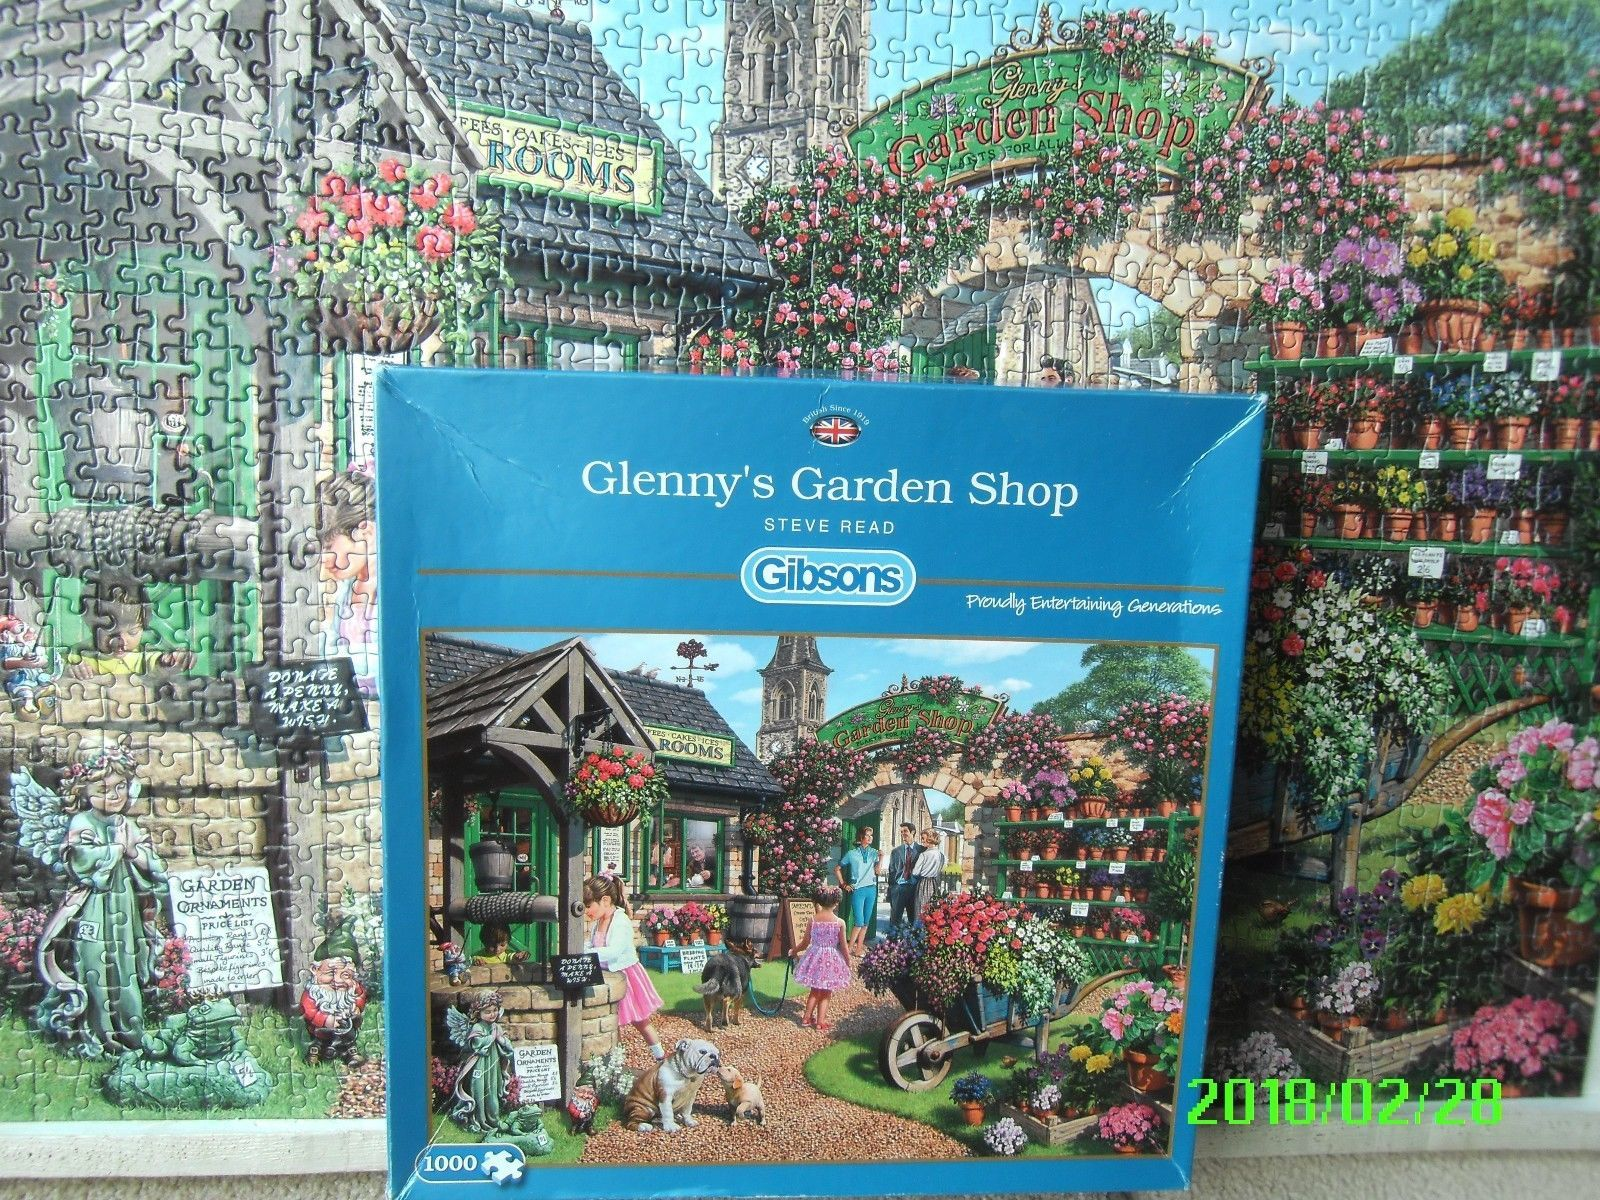 ad66db0ab446 1000 PIECE GIBSONS JIGSAW PUZZLE - GLENNY'S GARDEN CENTRE - ALL COMPLETE    eBay